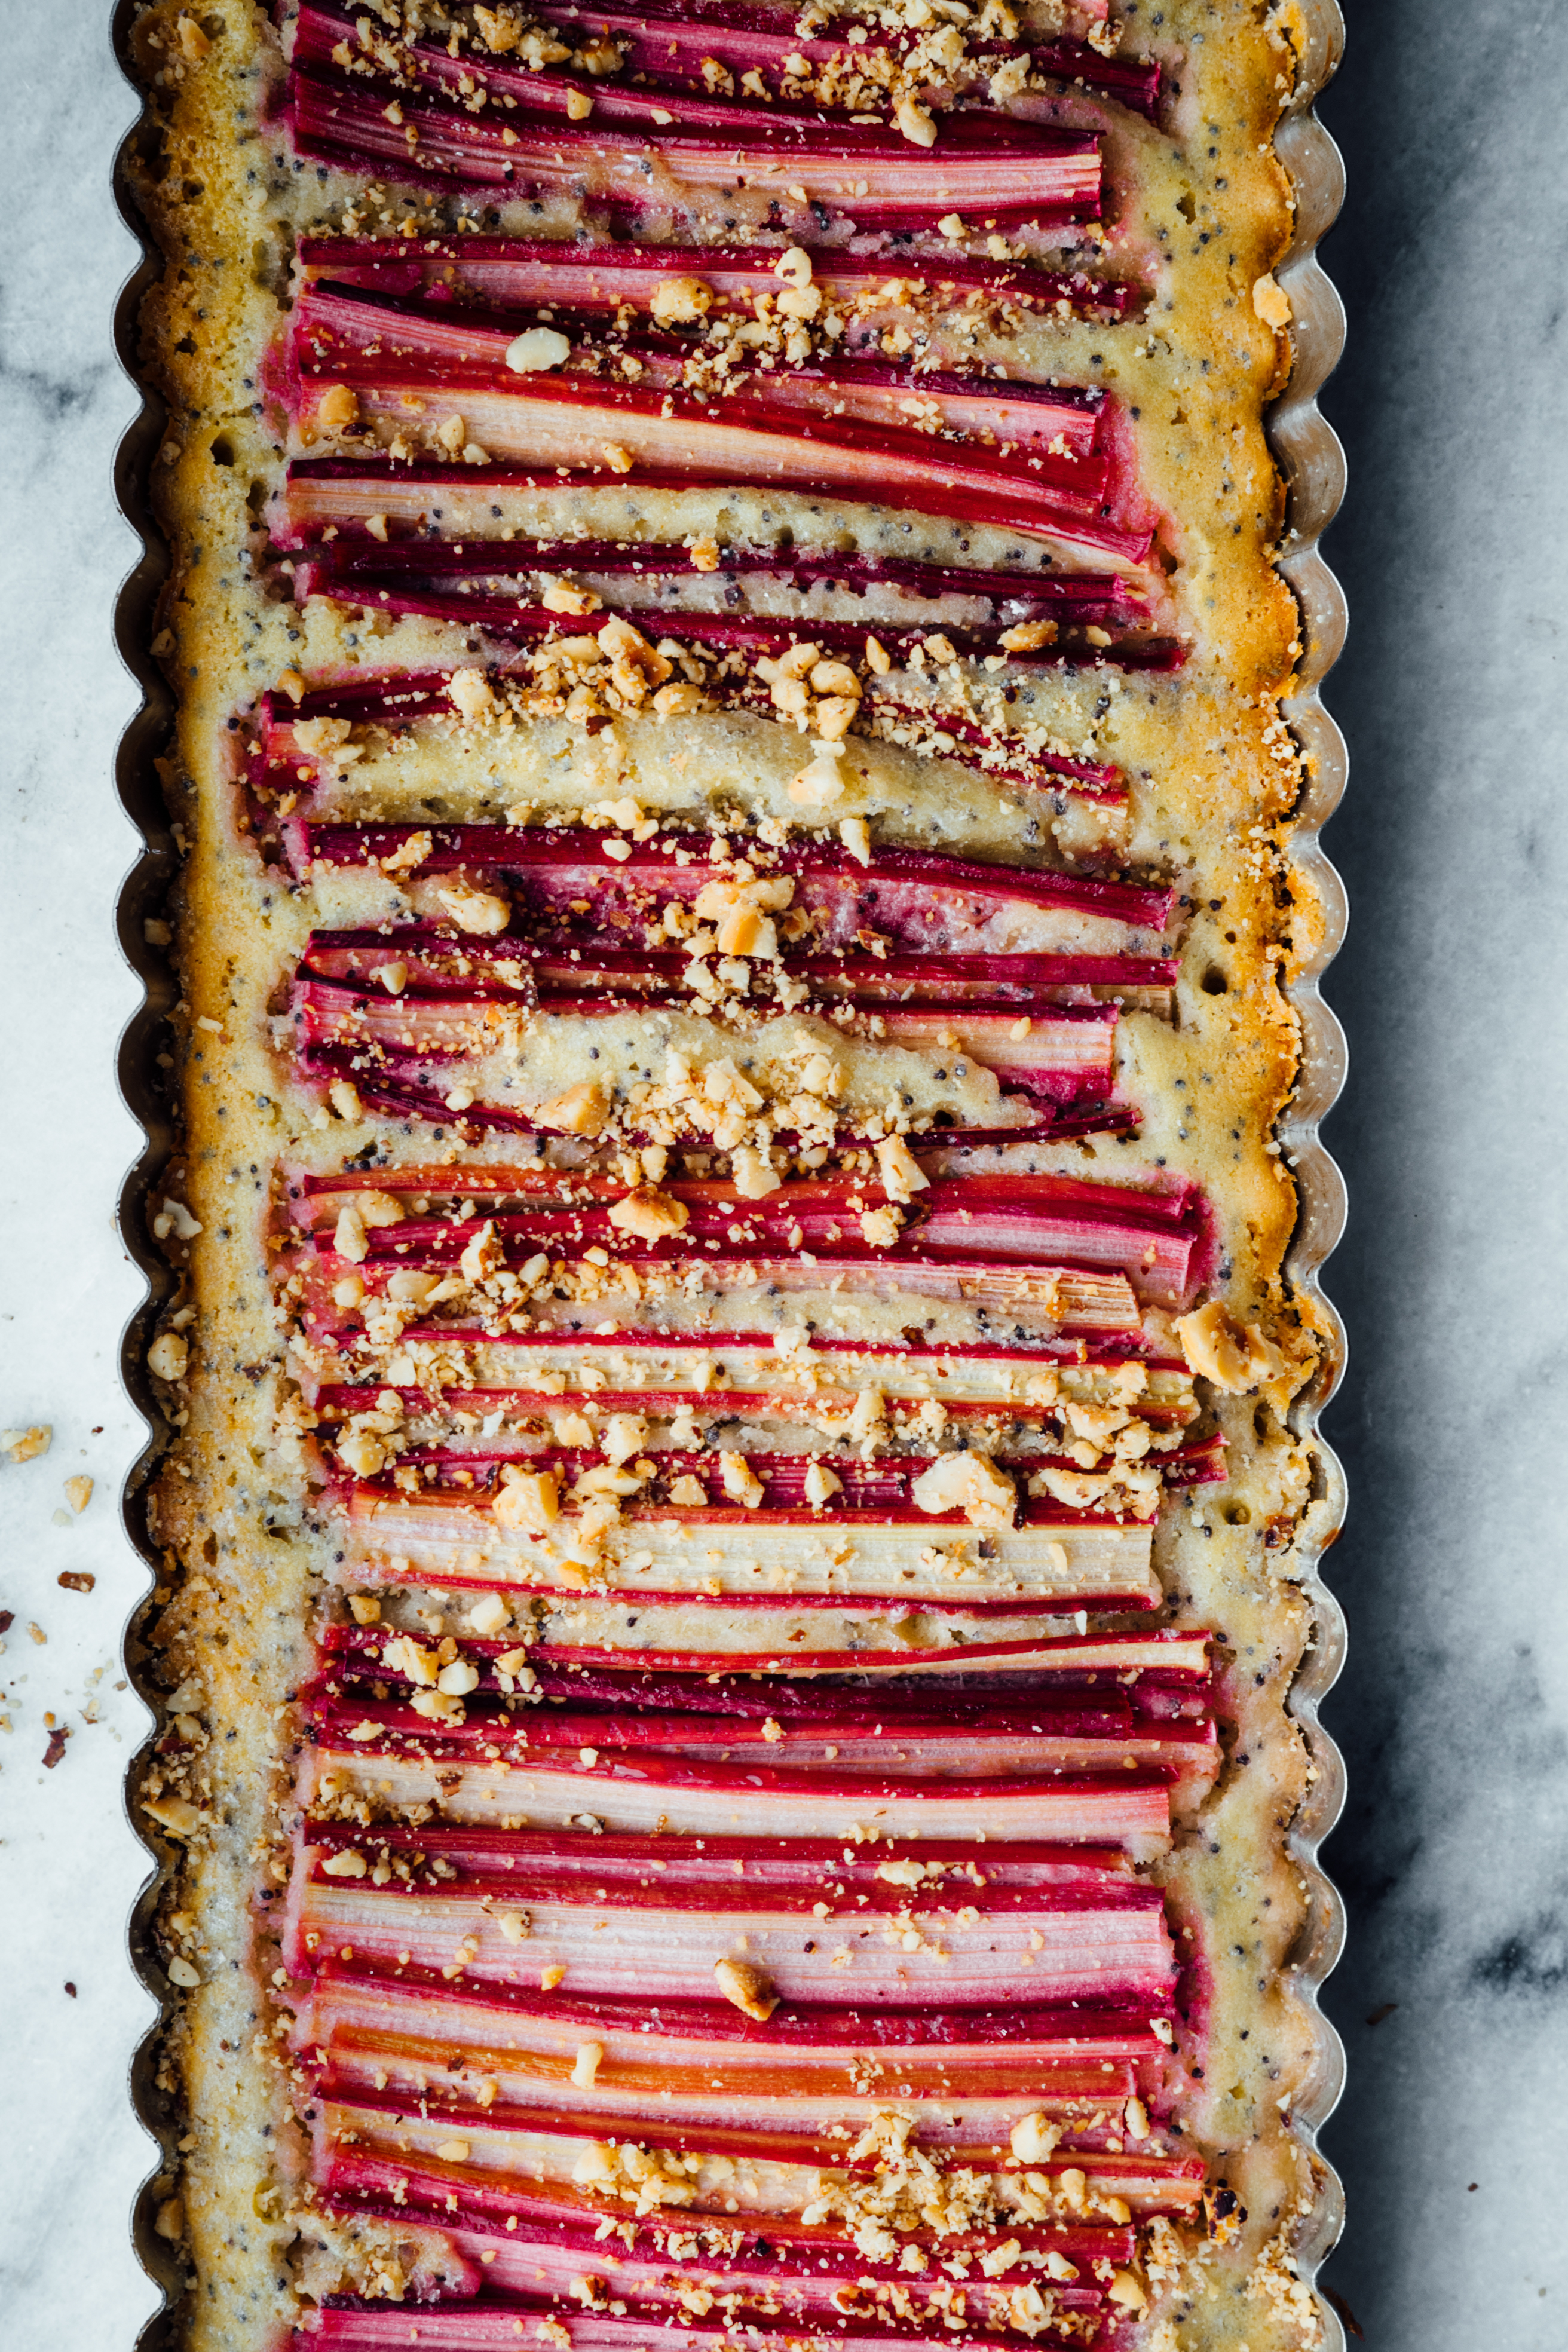 Orange Blossom Water and Poppy Seed Rhubarb Cake | TENDING the TABLE